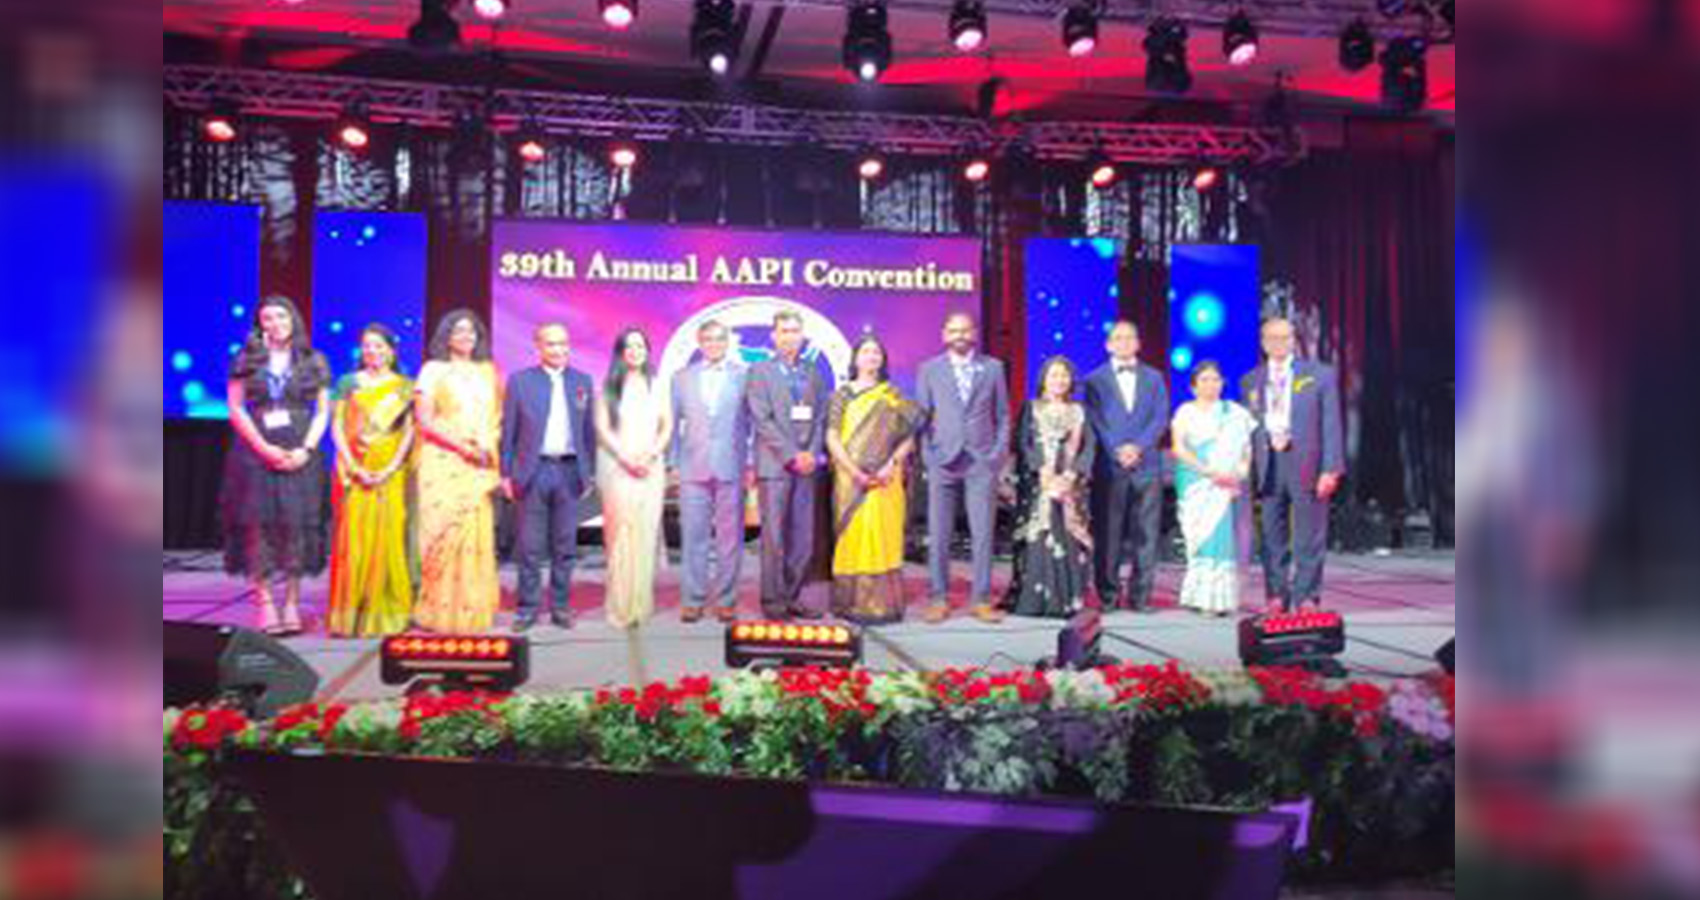 AAPI Raises Over $5 Million Towards Covid Relief Efforts In India